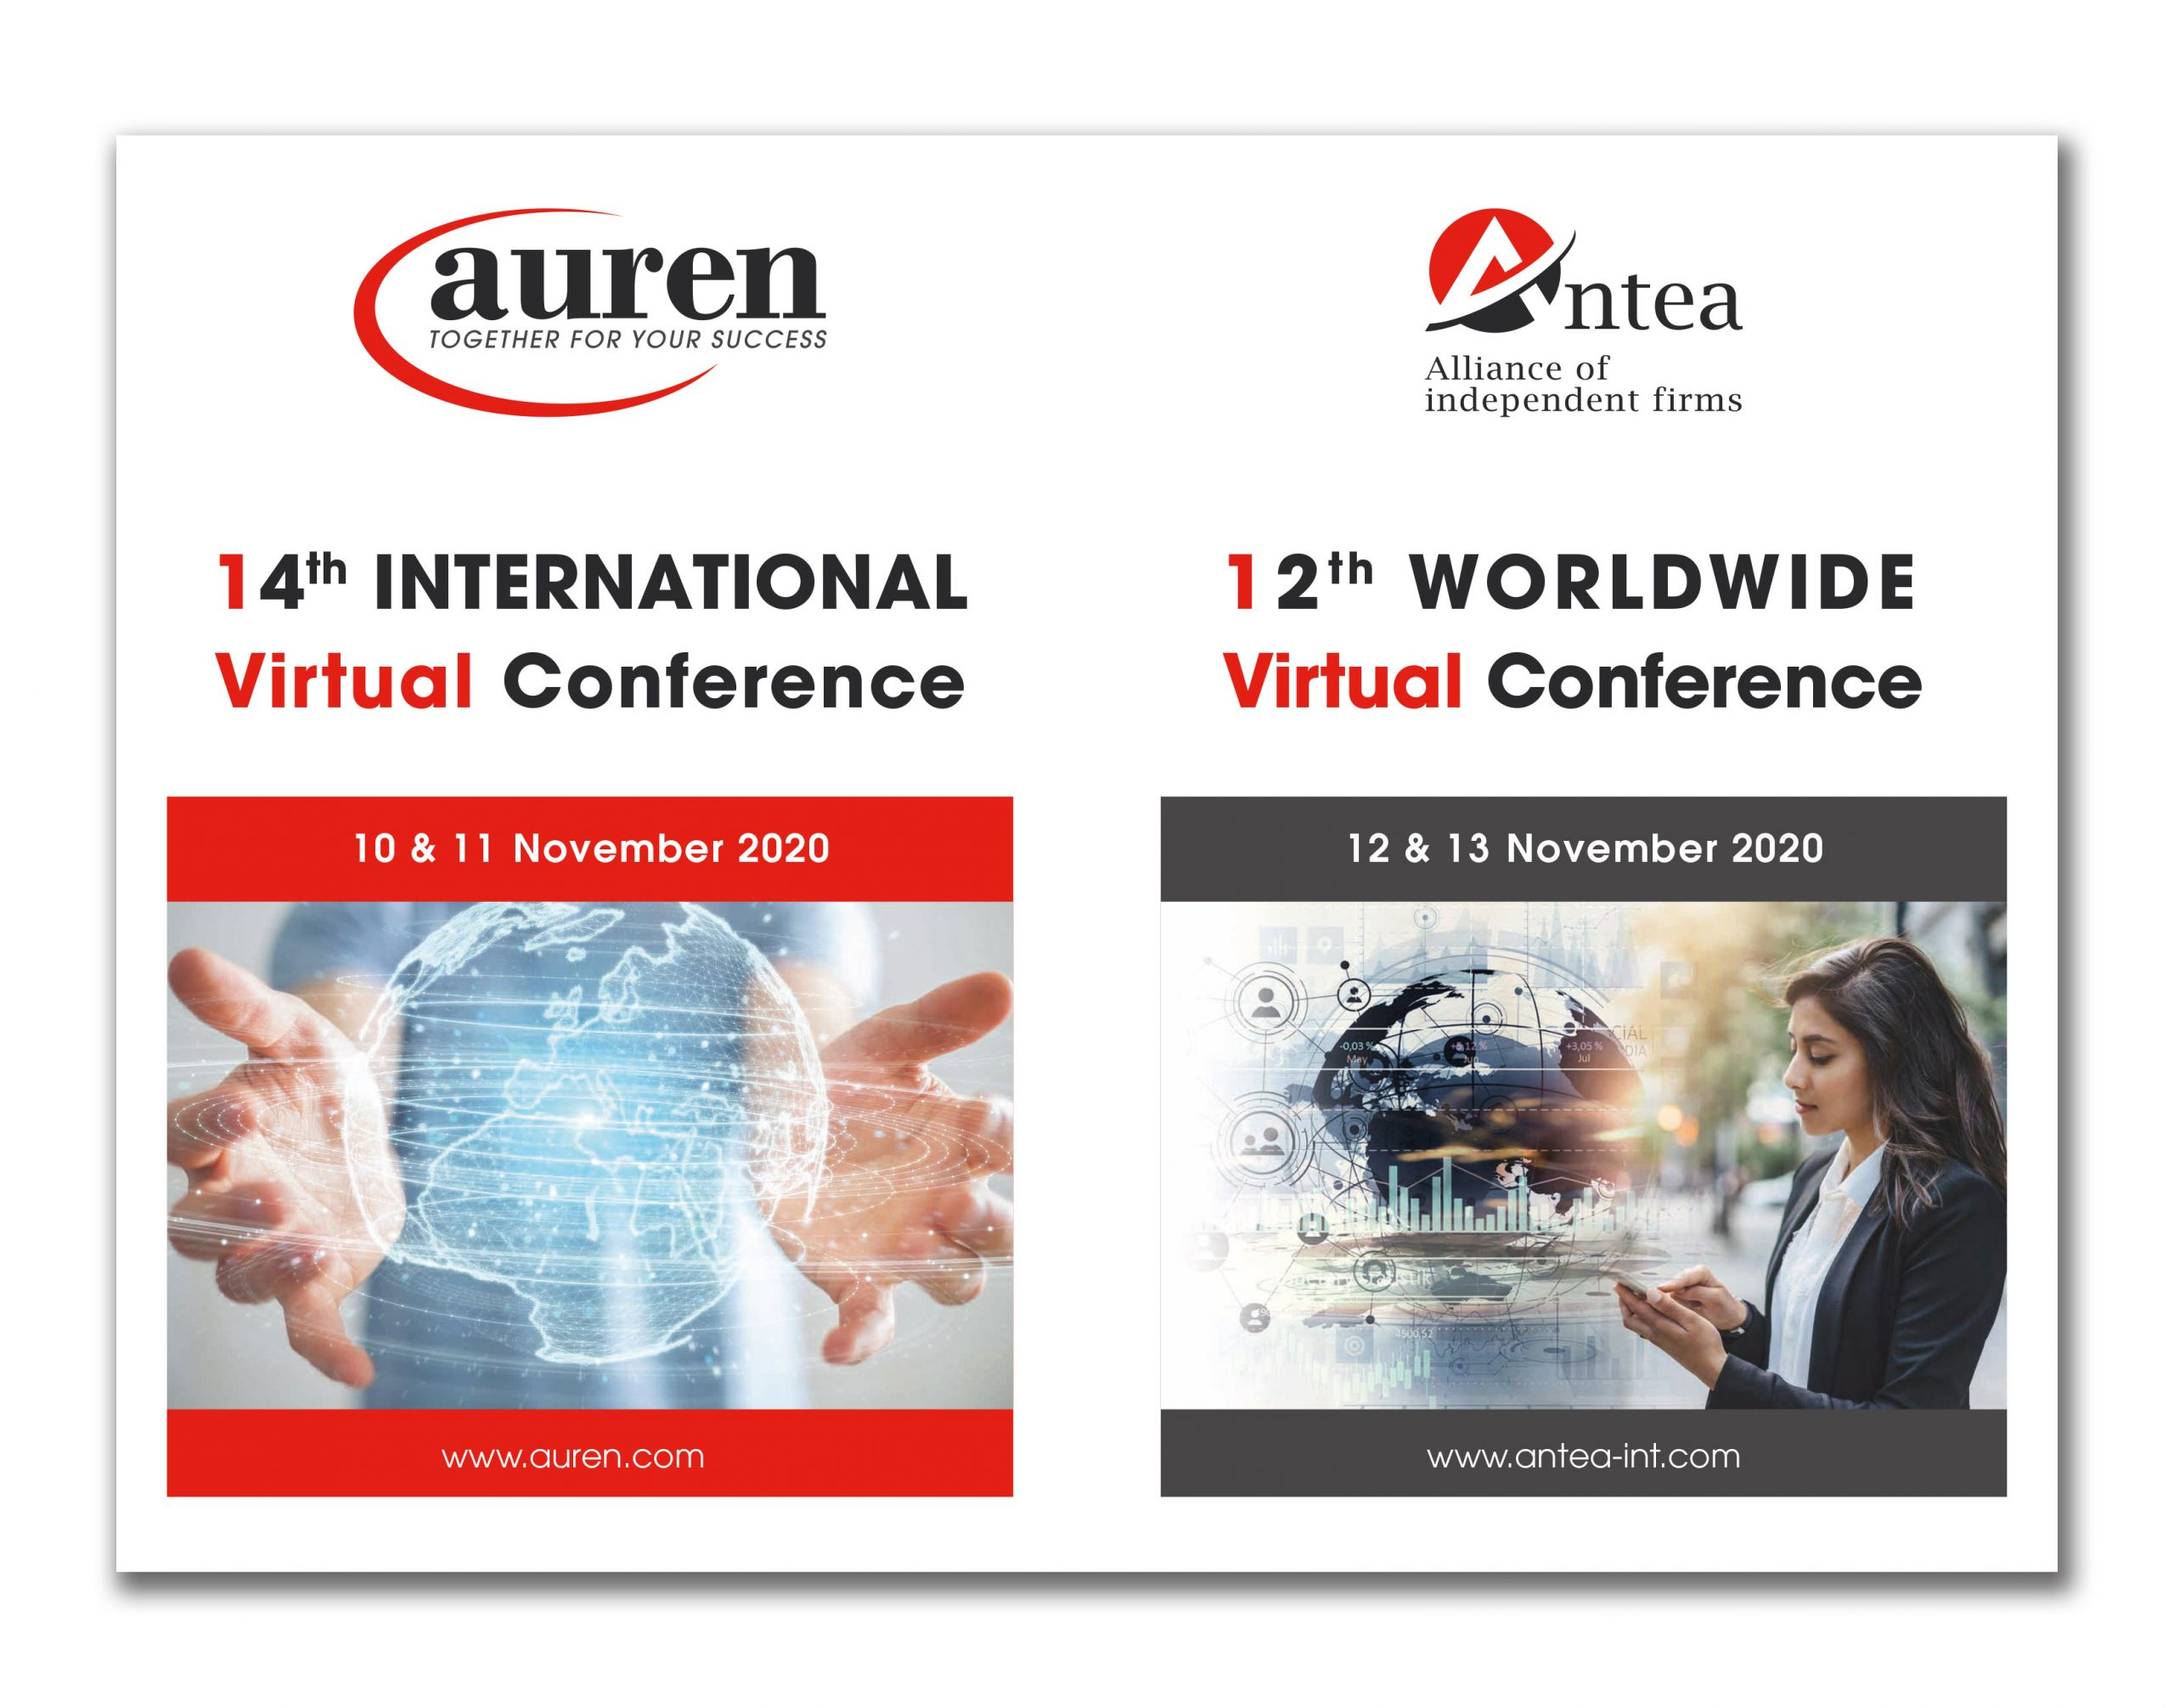 14th Auren International Virtual Conference & 12th Antea Worldwide Virtual Conference